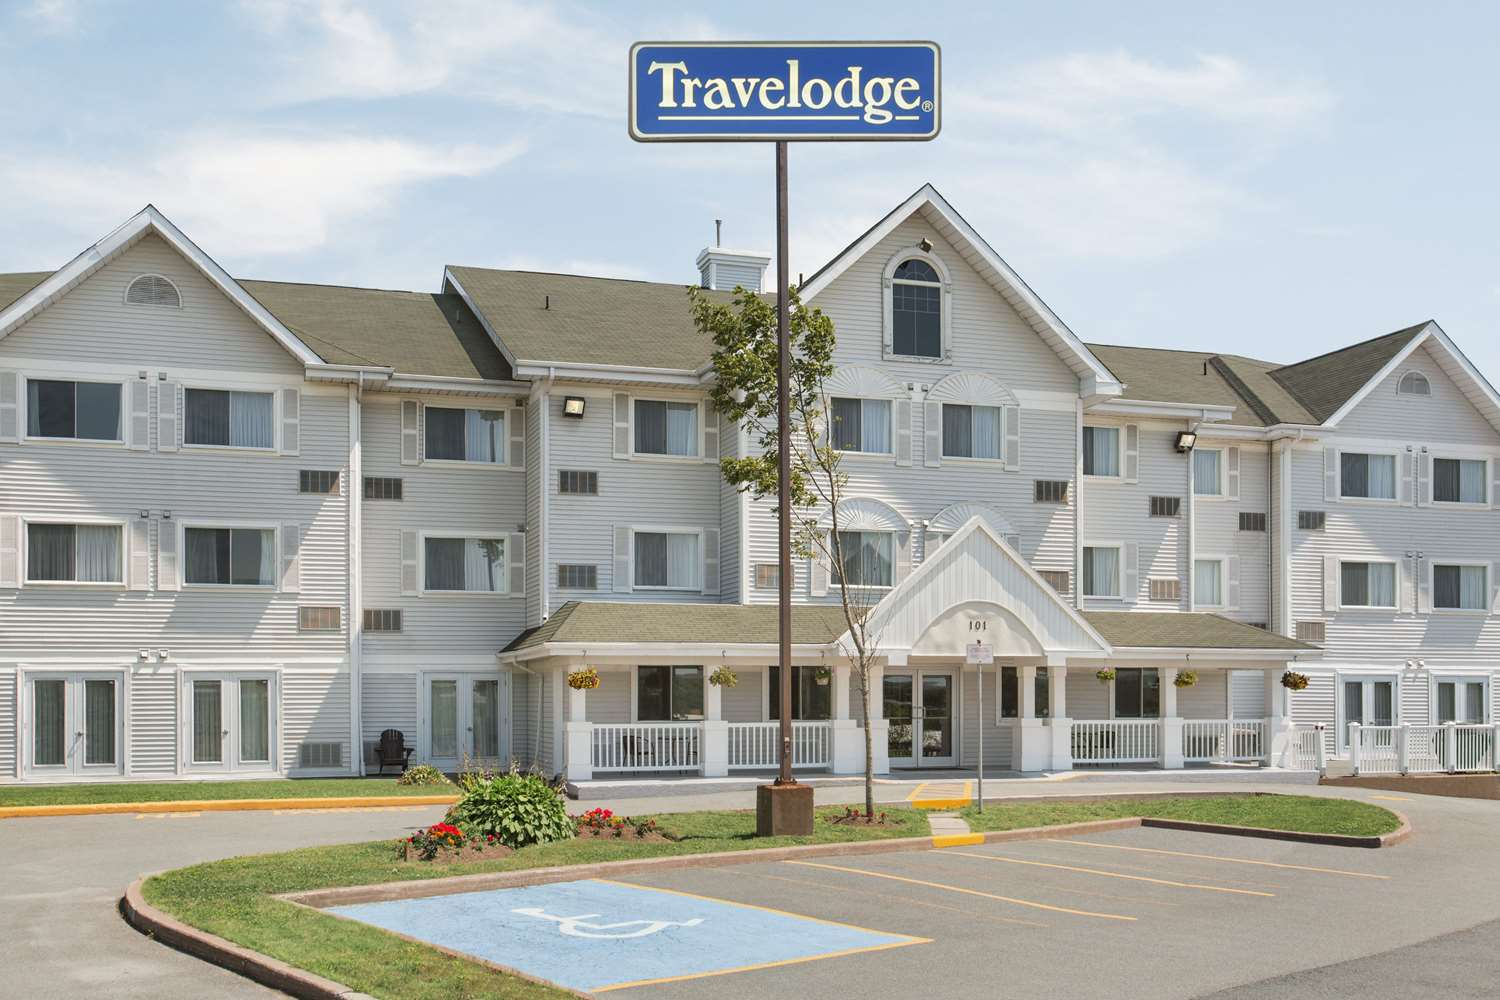 Exterior view - Travelodge Suites Dartmouth